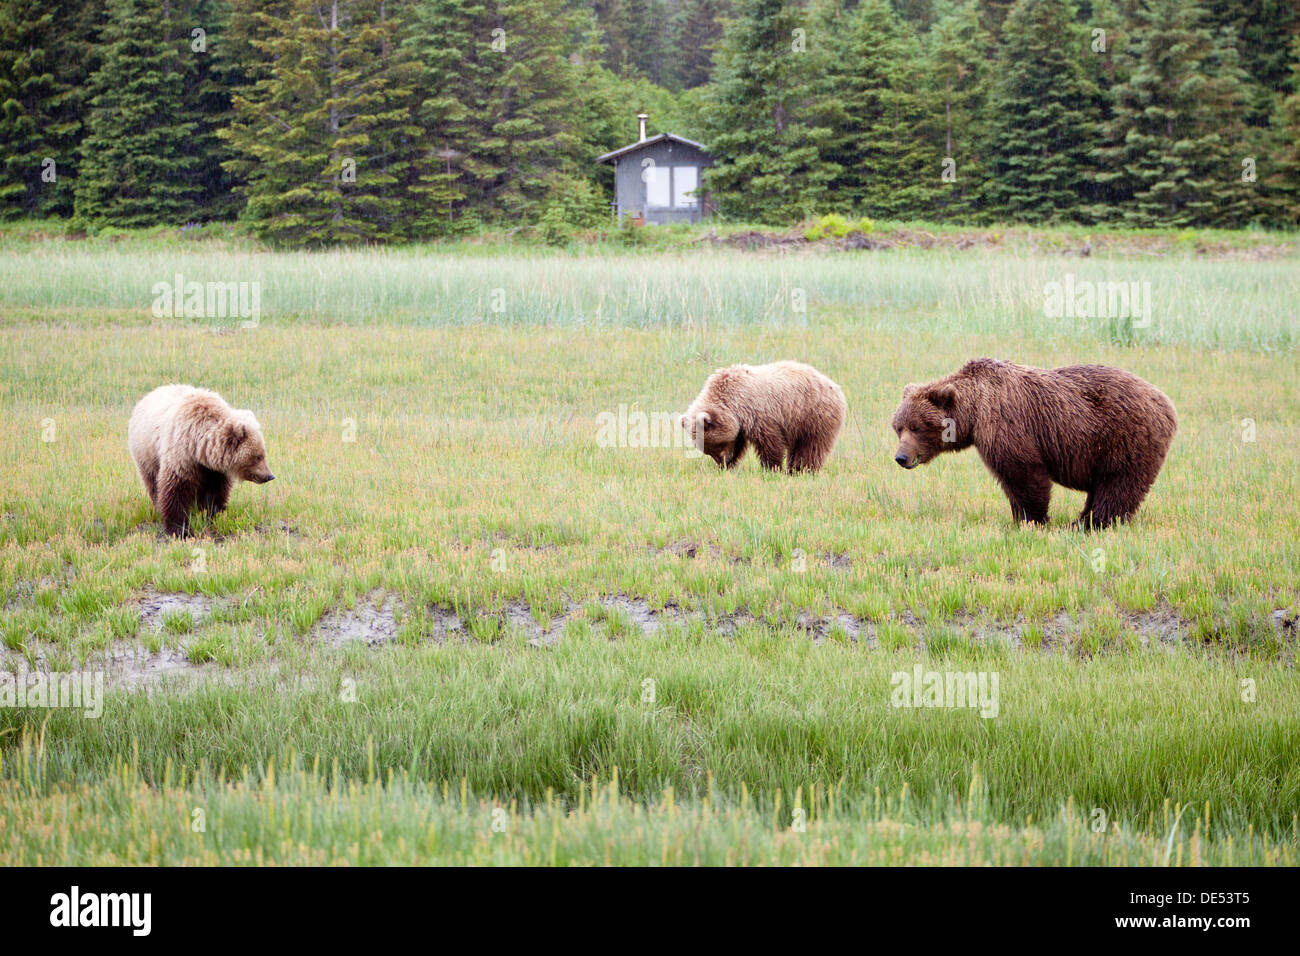 Family (mother with cubs) of grizzly brown bears - Ursus arctos -, Lake Clark National Park, Alaska, U.S.A. - Stock Image